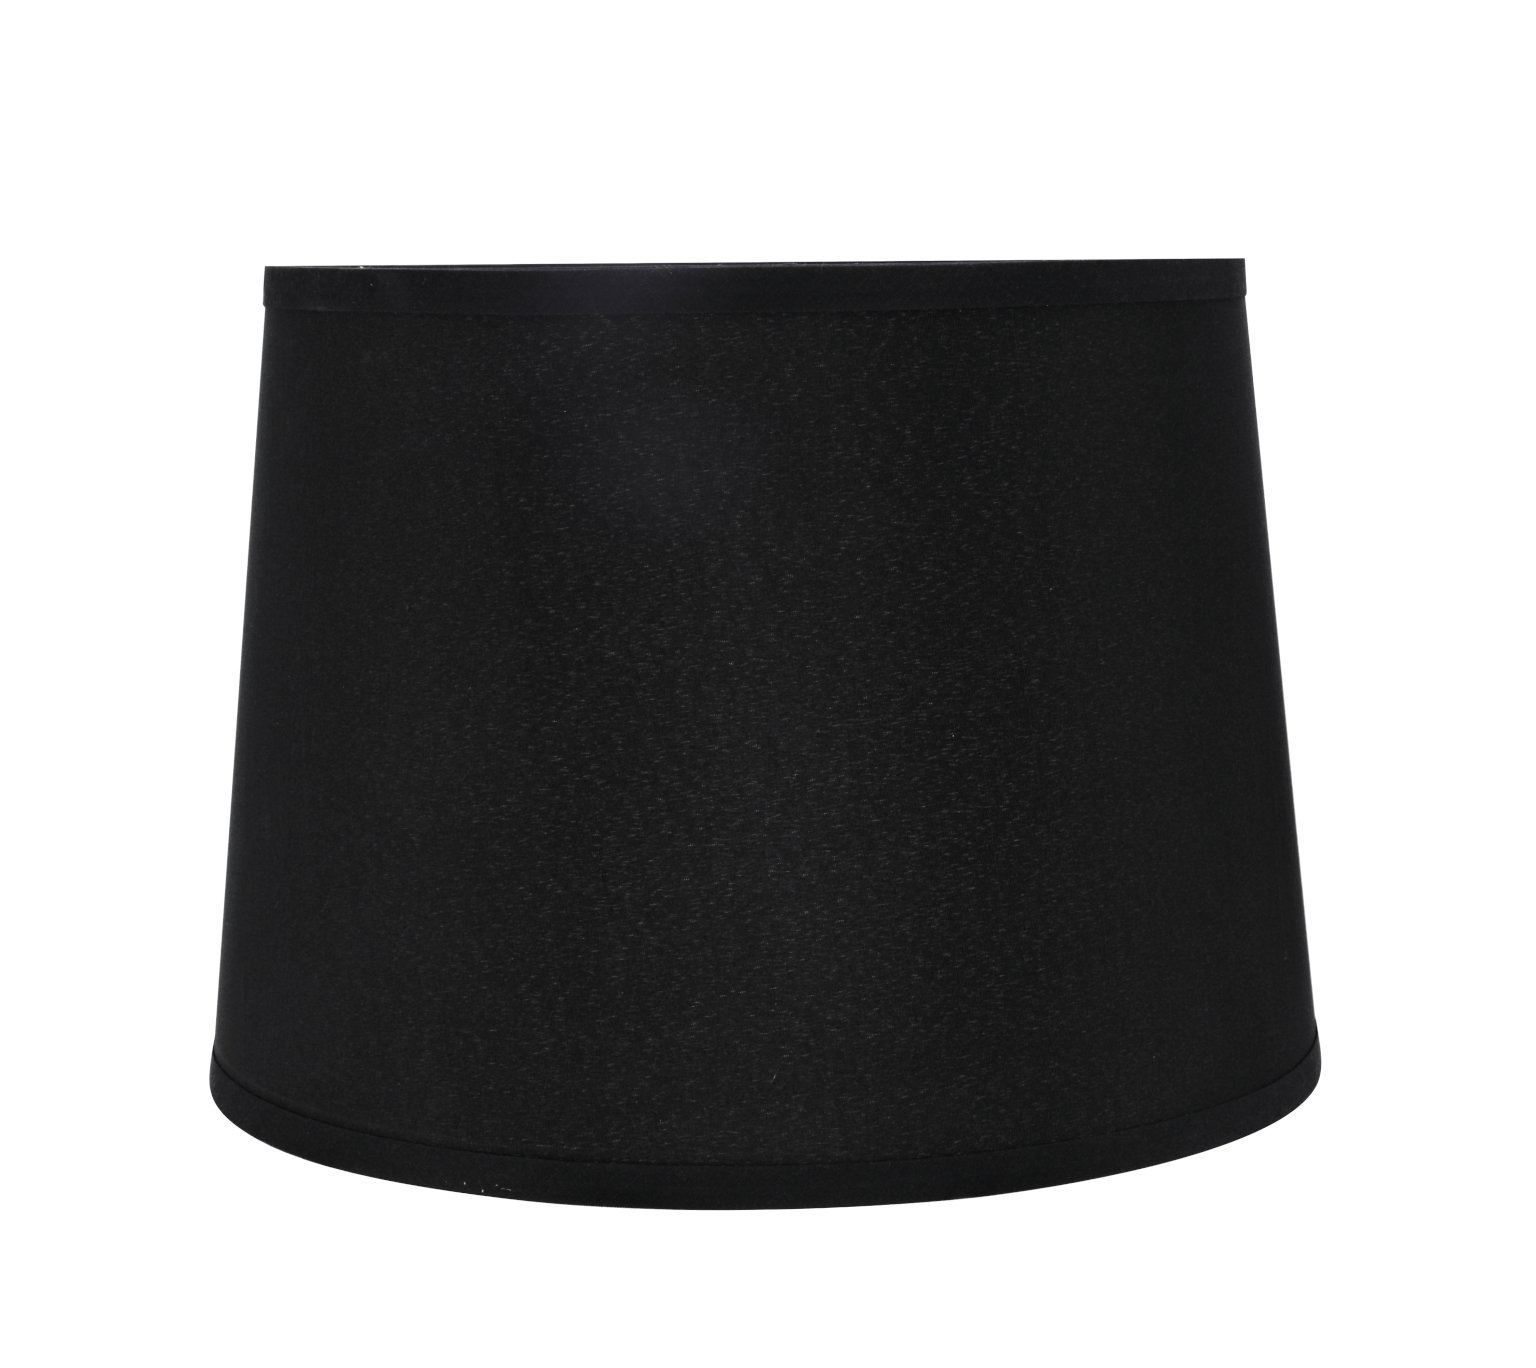 """Aspen Creative 32312 Transitional Hardback Empire Shaped Spider Construction Lamp Shade in Black, 14"""" Wide (12"""" x 14"""" x 10"""")"""